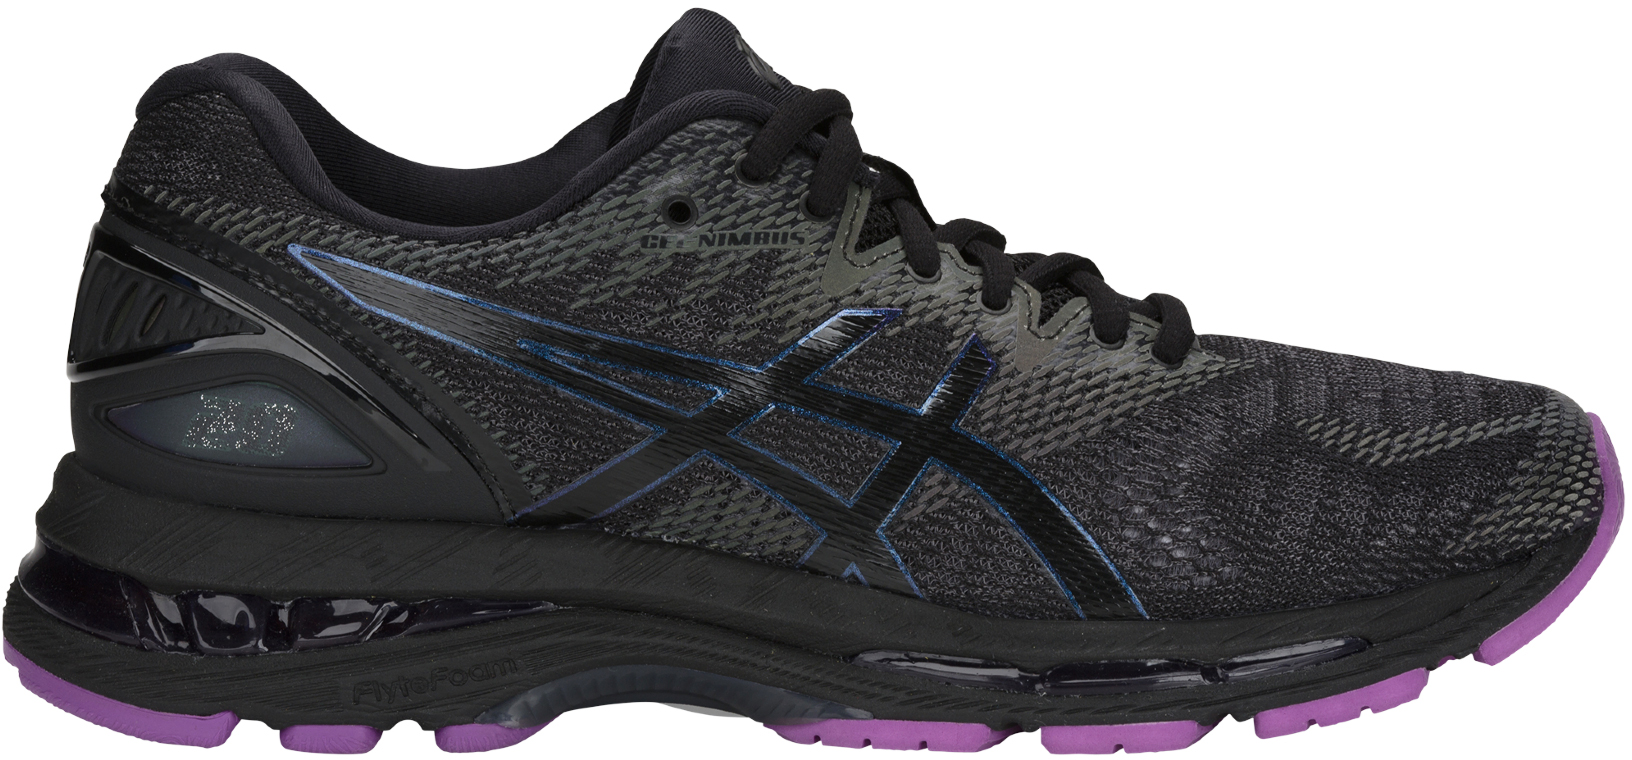 wiggle.com | Asics Women's Gel-Nimbus 20 - Lite-show Shoes ...